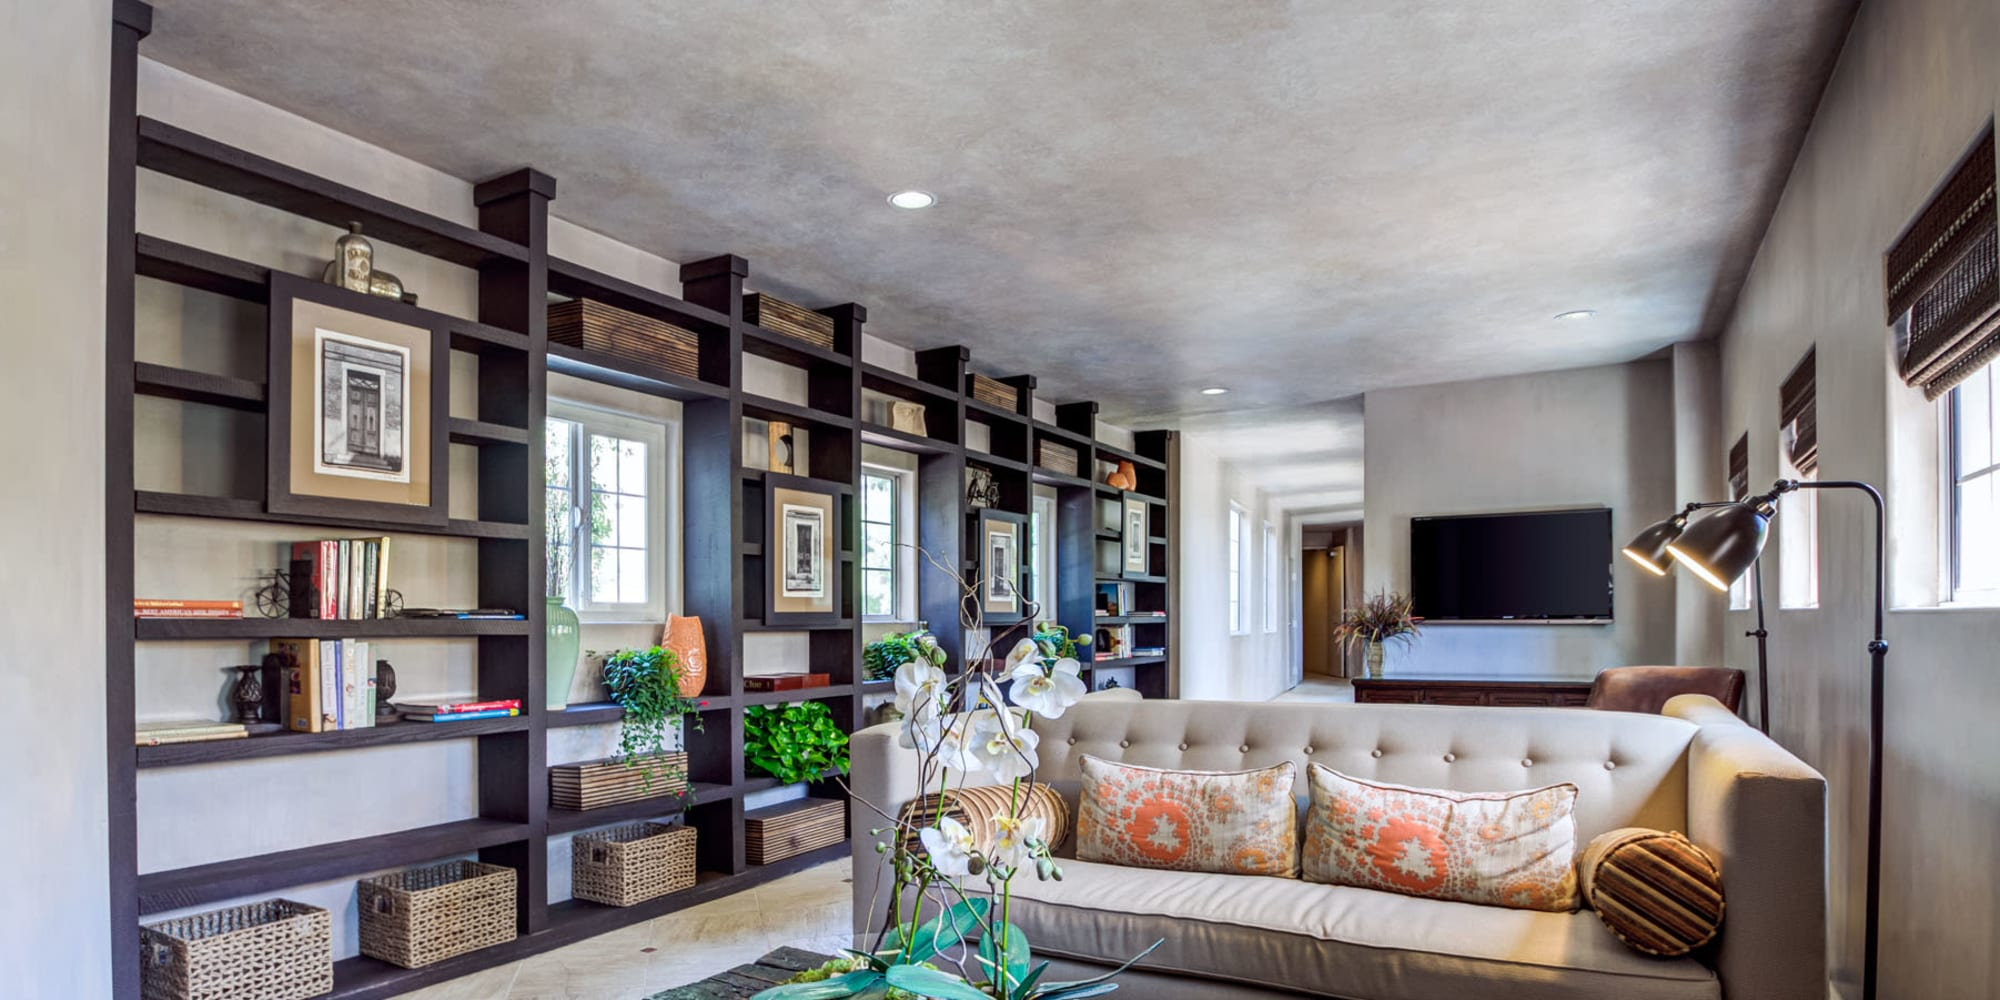 Custom built-in shelving with books and artwork in the lounge area of the resident clubhouse at L'Estancia in Studio City, California